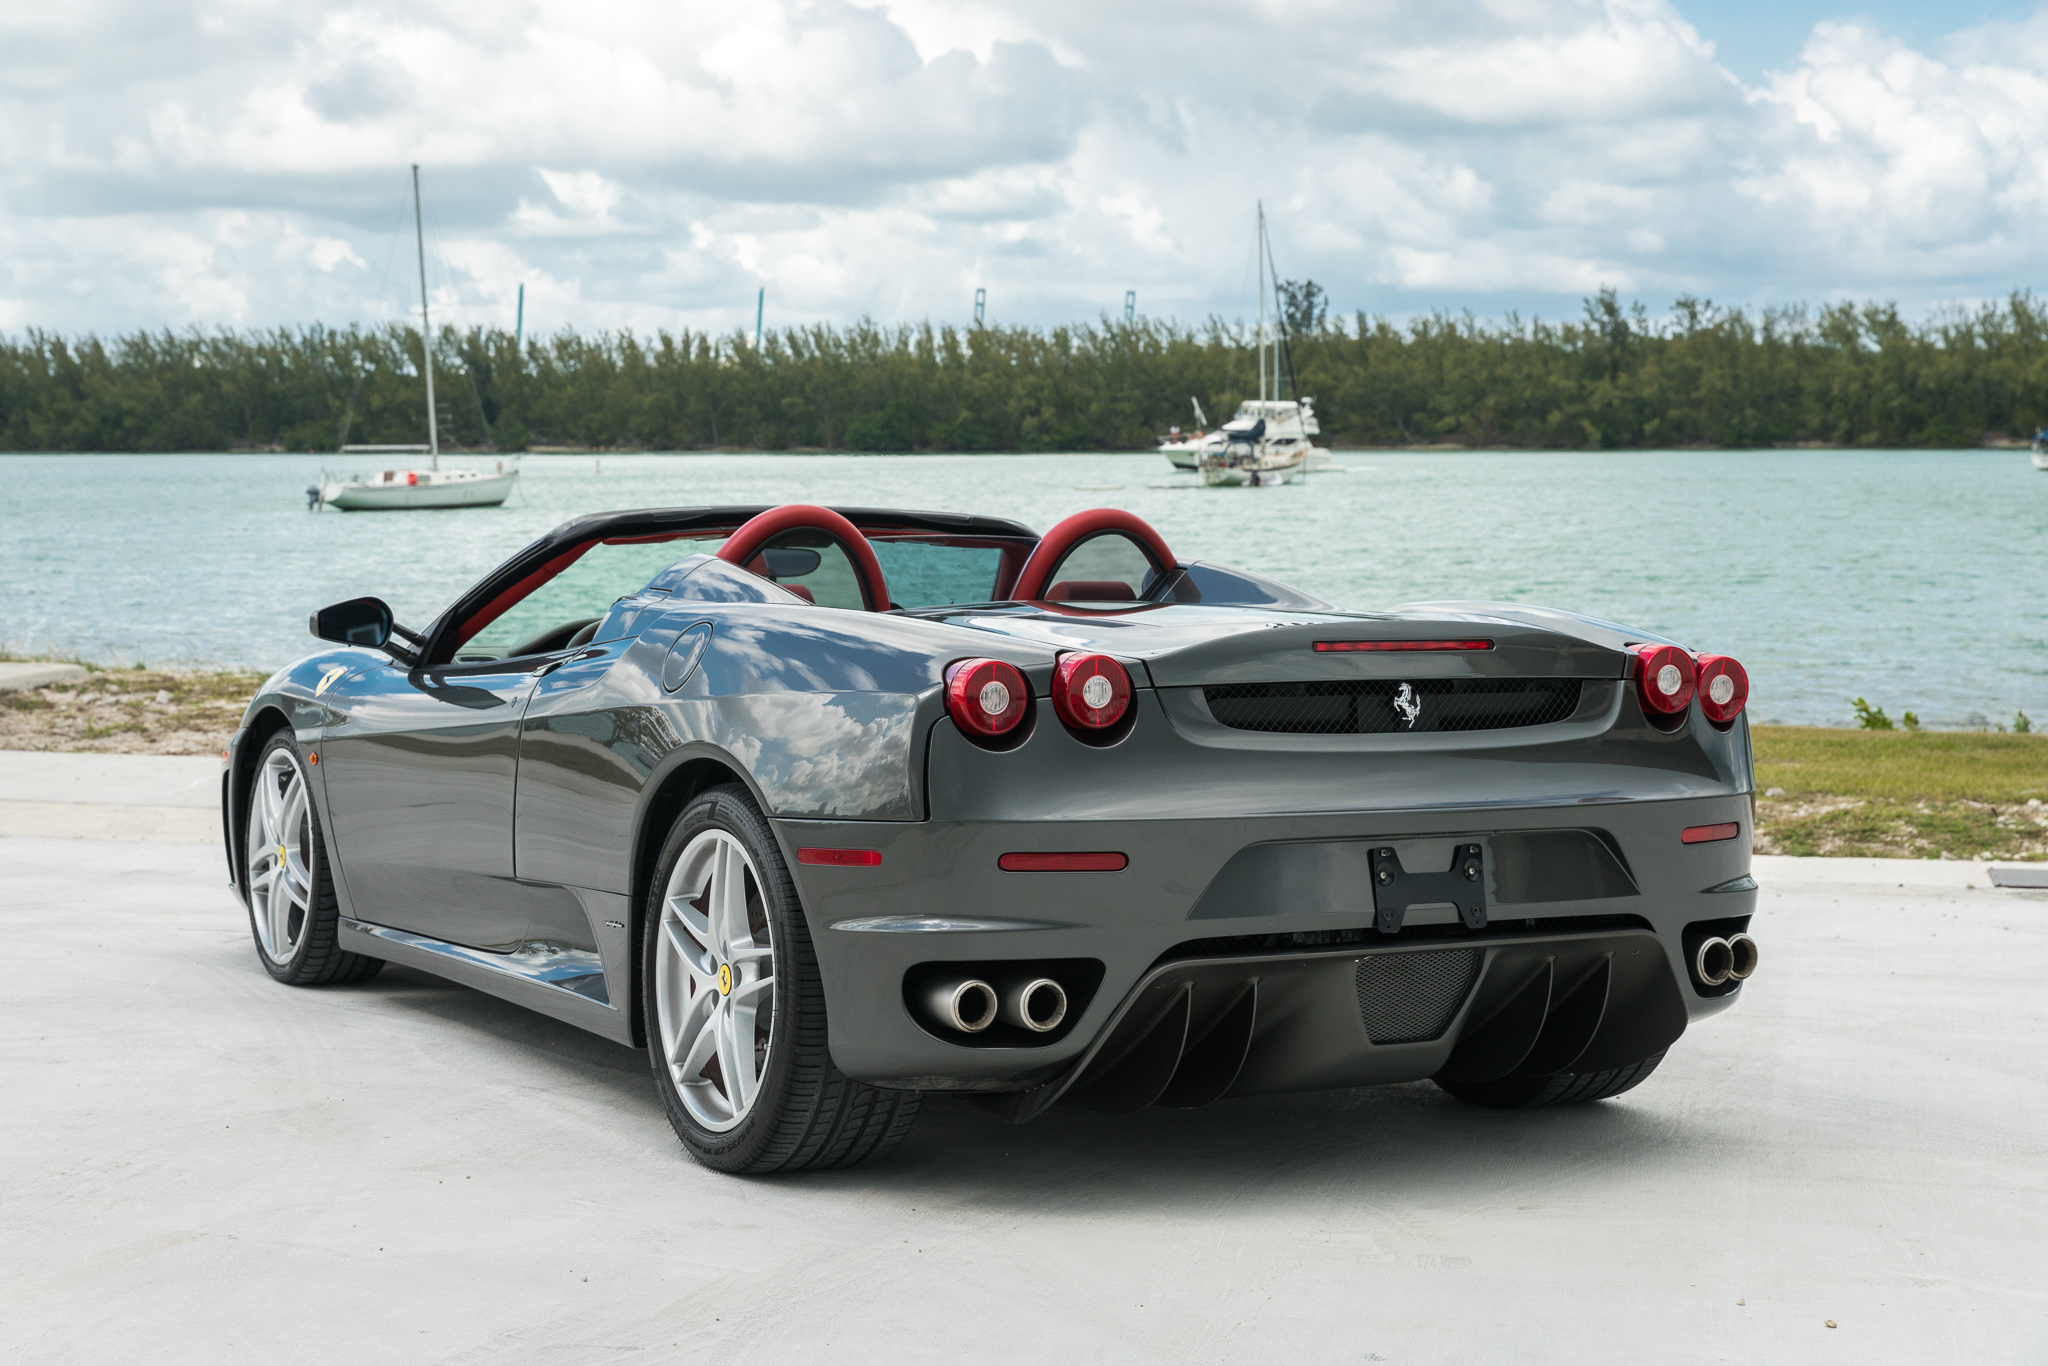 2006 Ferrari F430 Spider For Sale Curated Vintage Classic Supercars